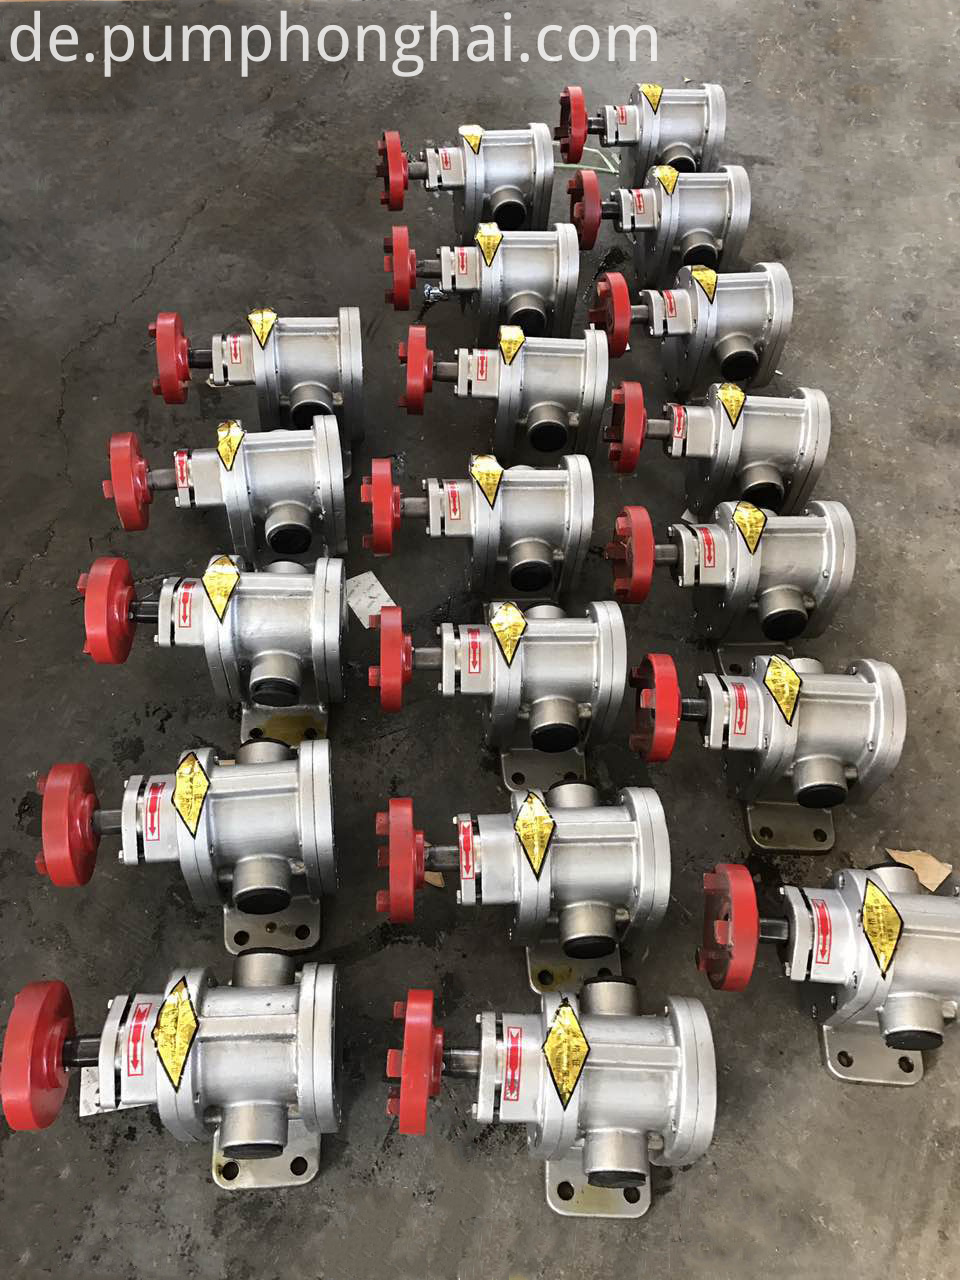 stainless steel 304 electric gear oil pumps bare pump